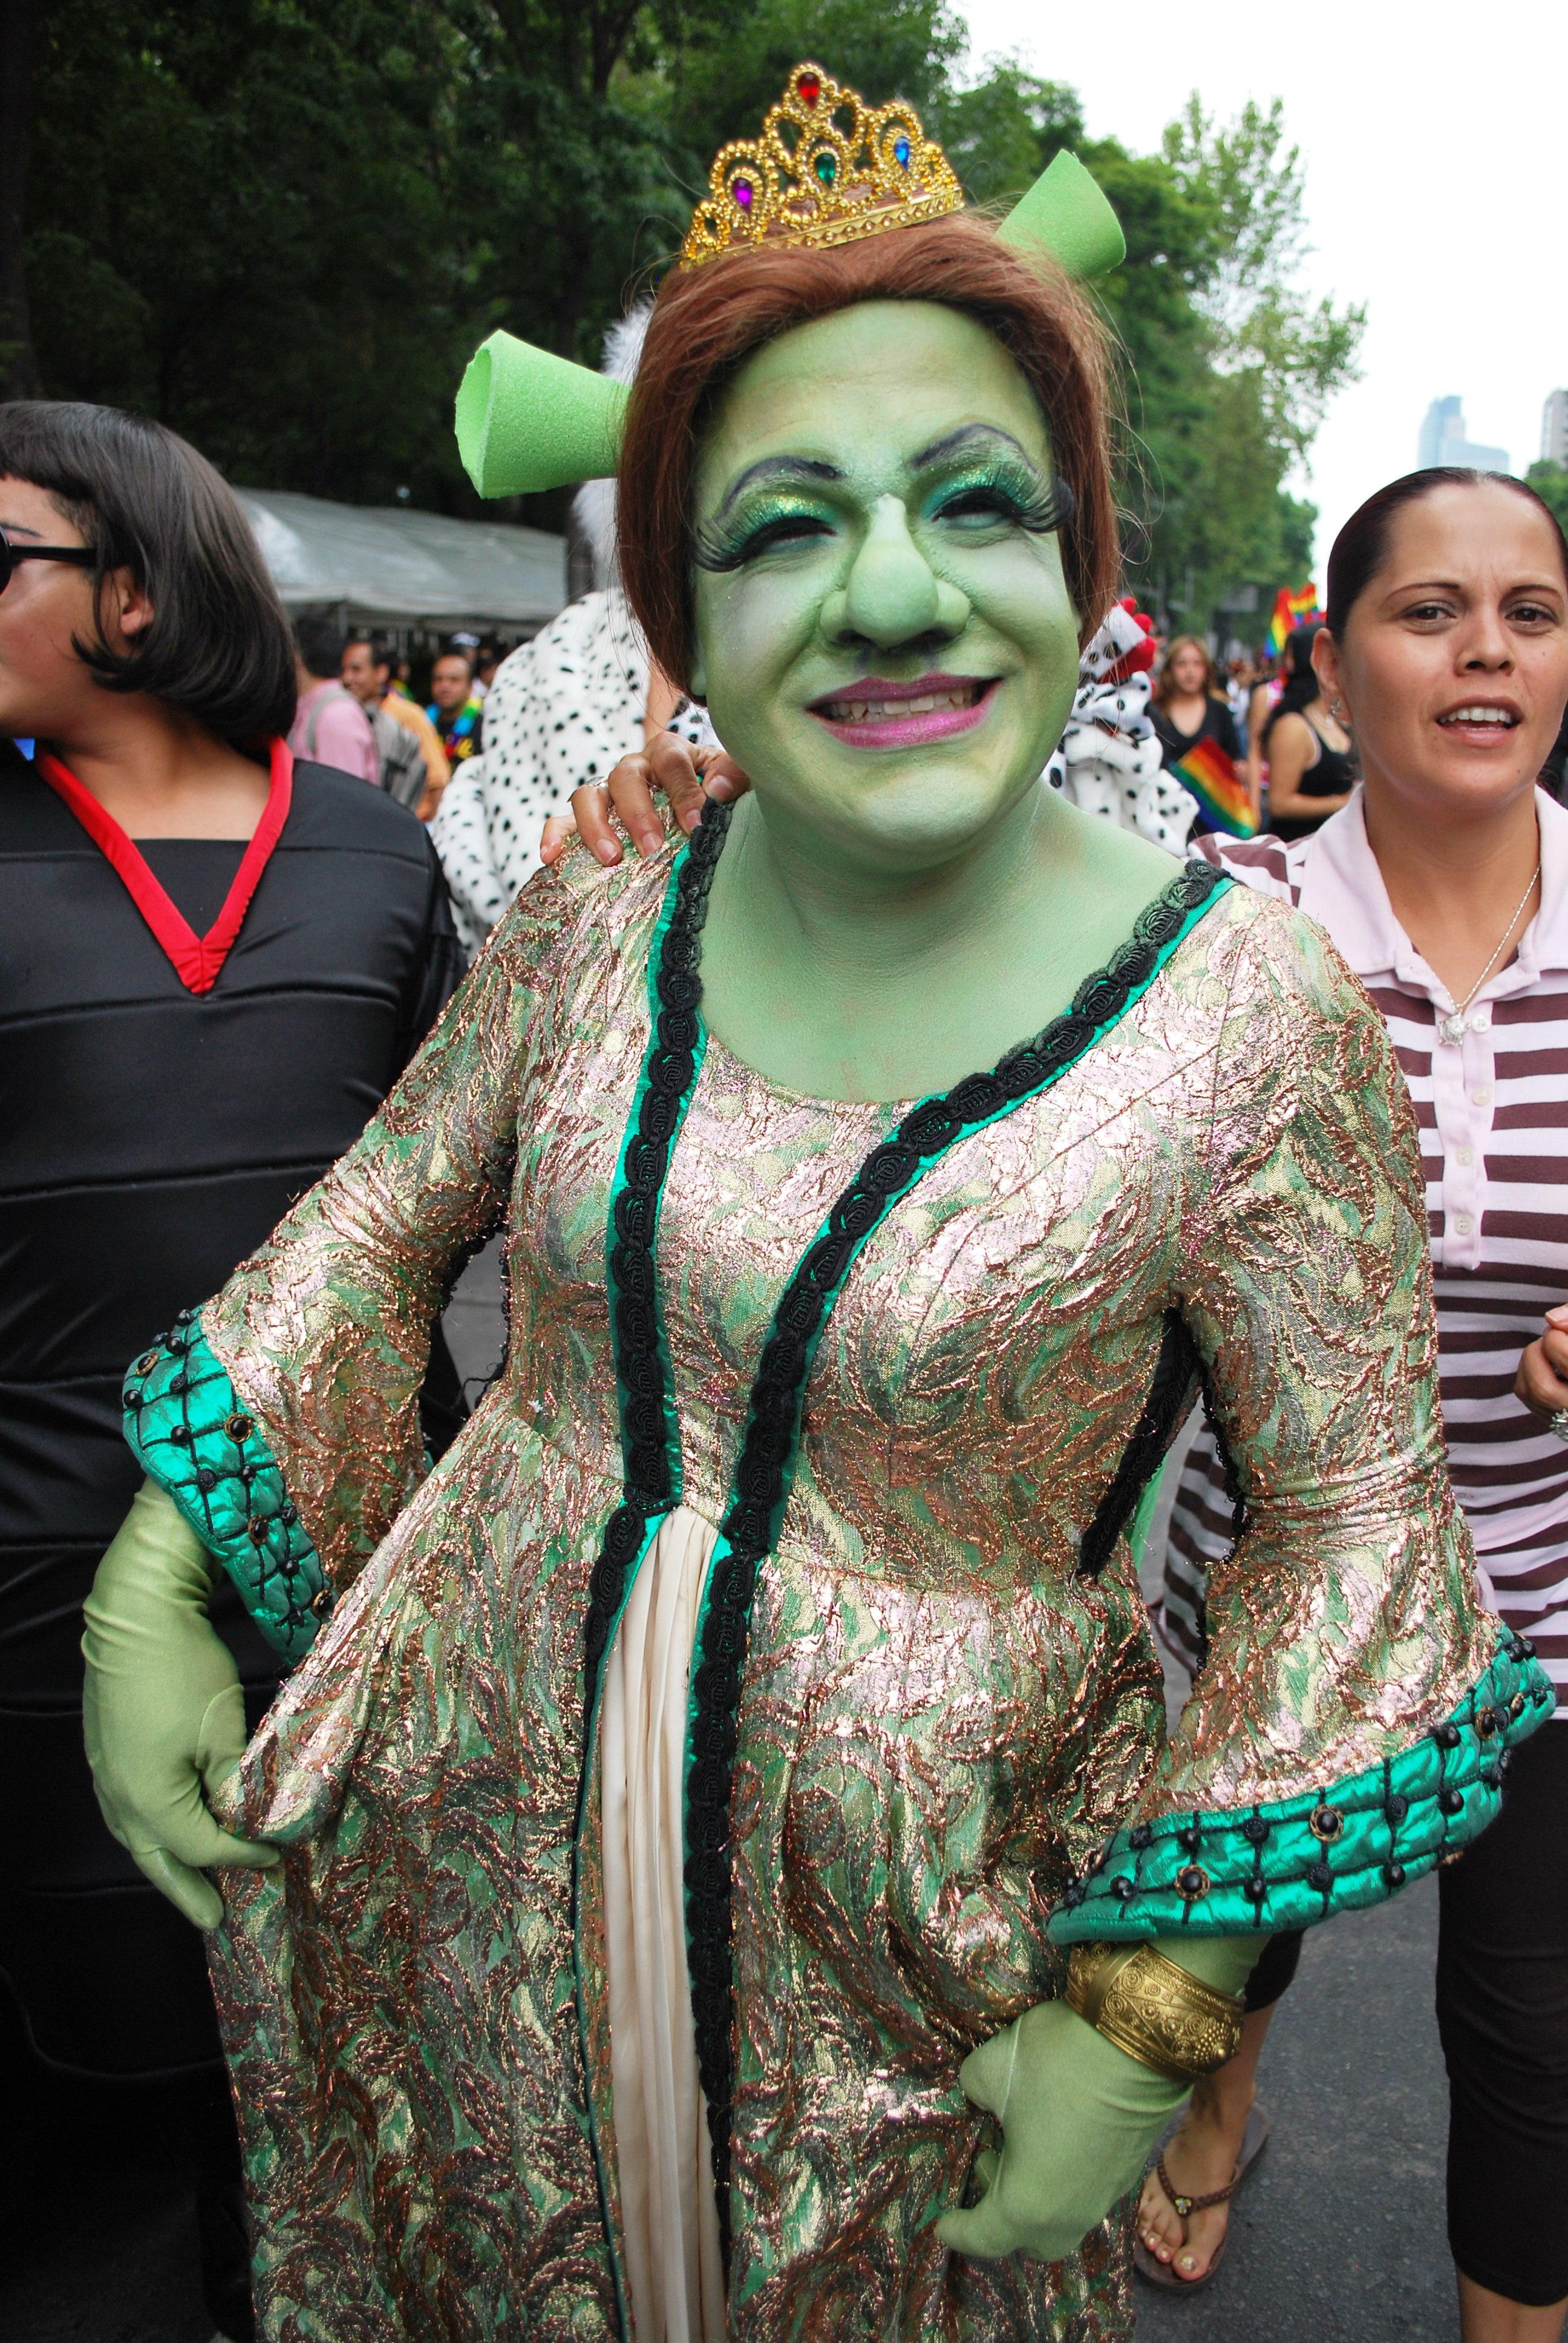 English: Participant in Princess Fiona costume at the 2009 Marcha Gay ...